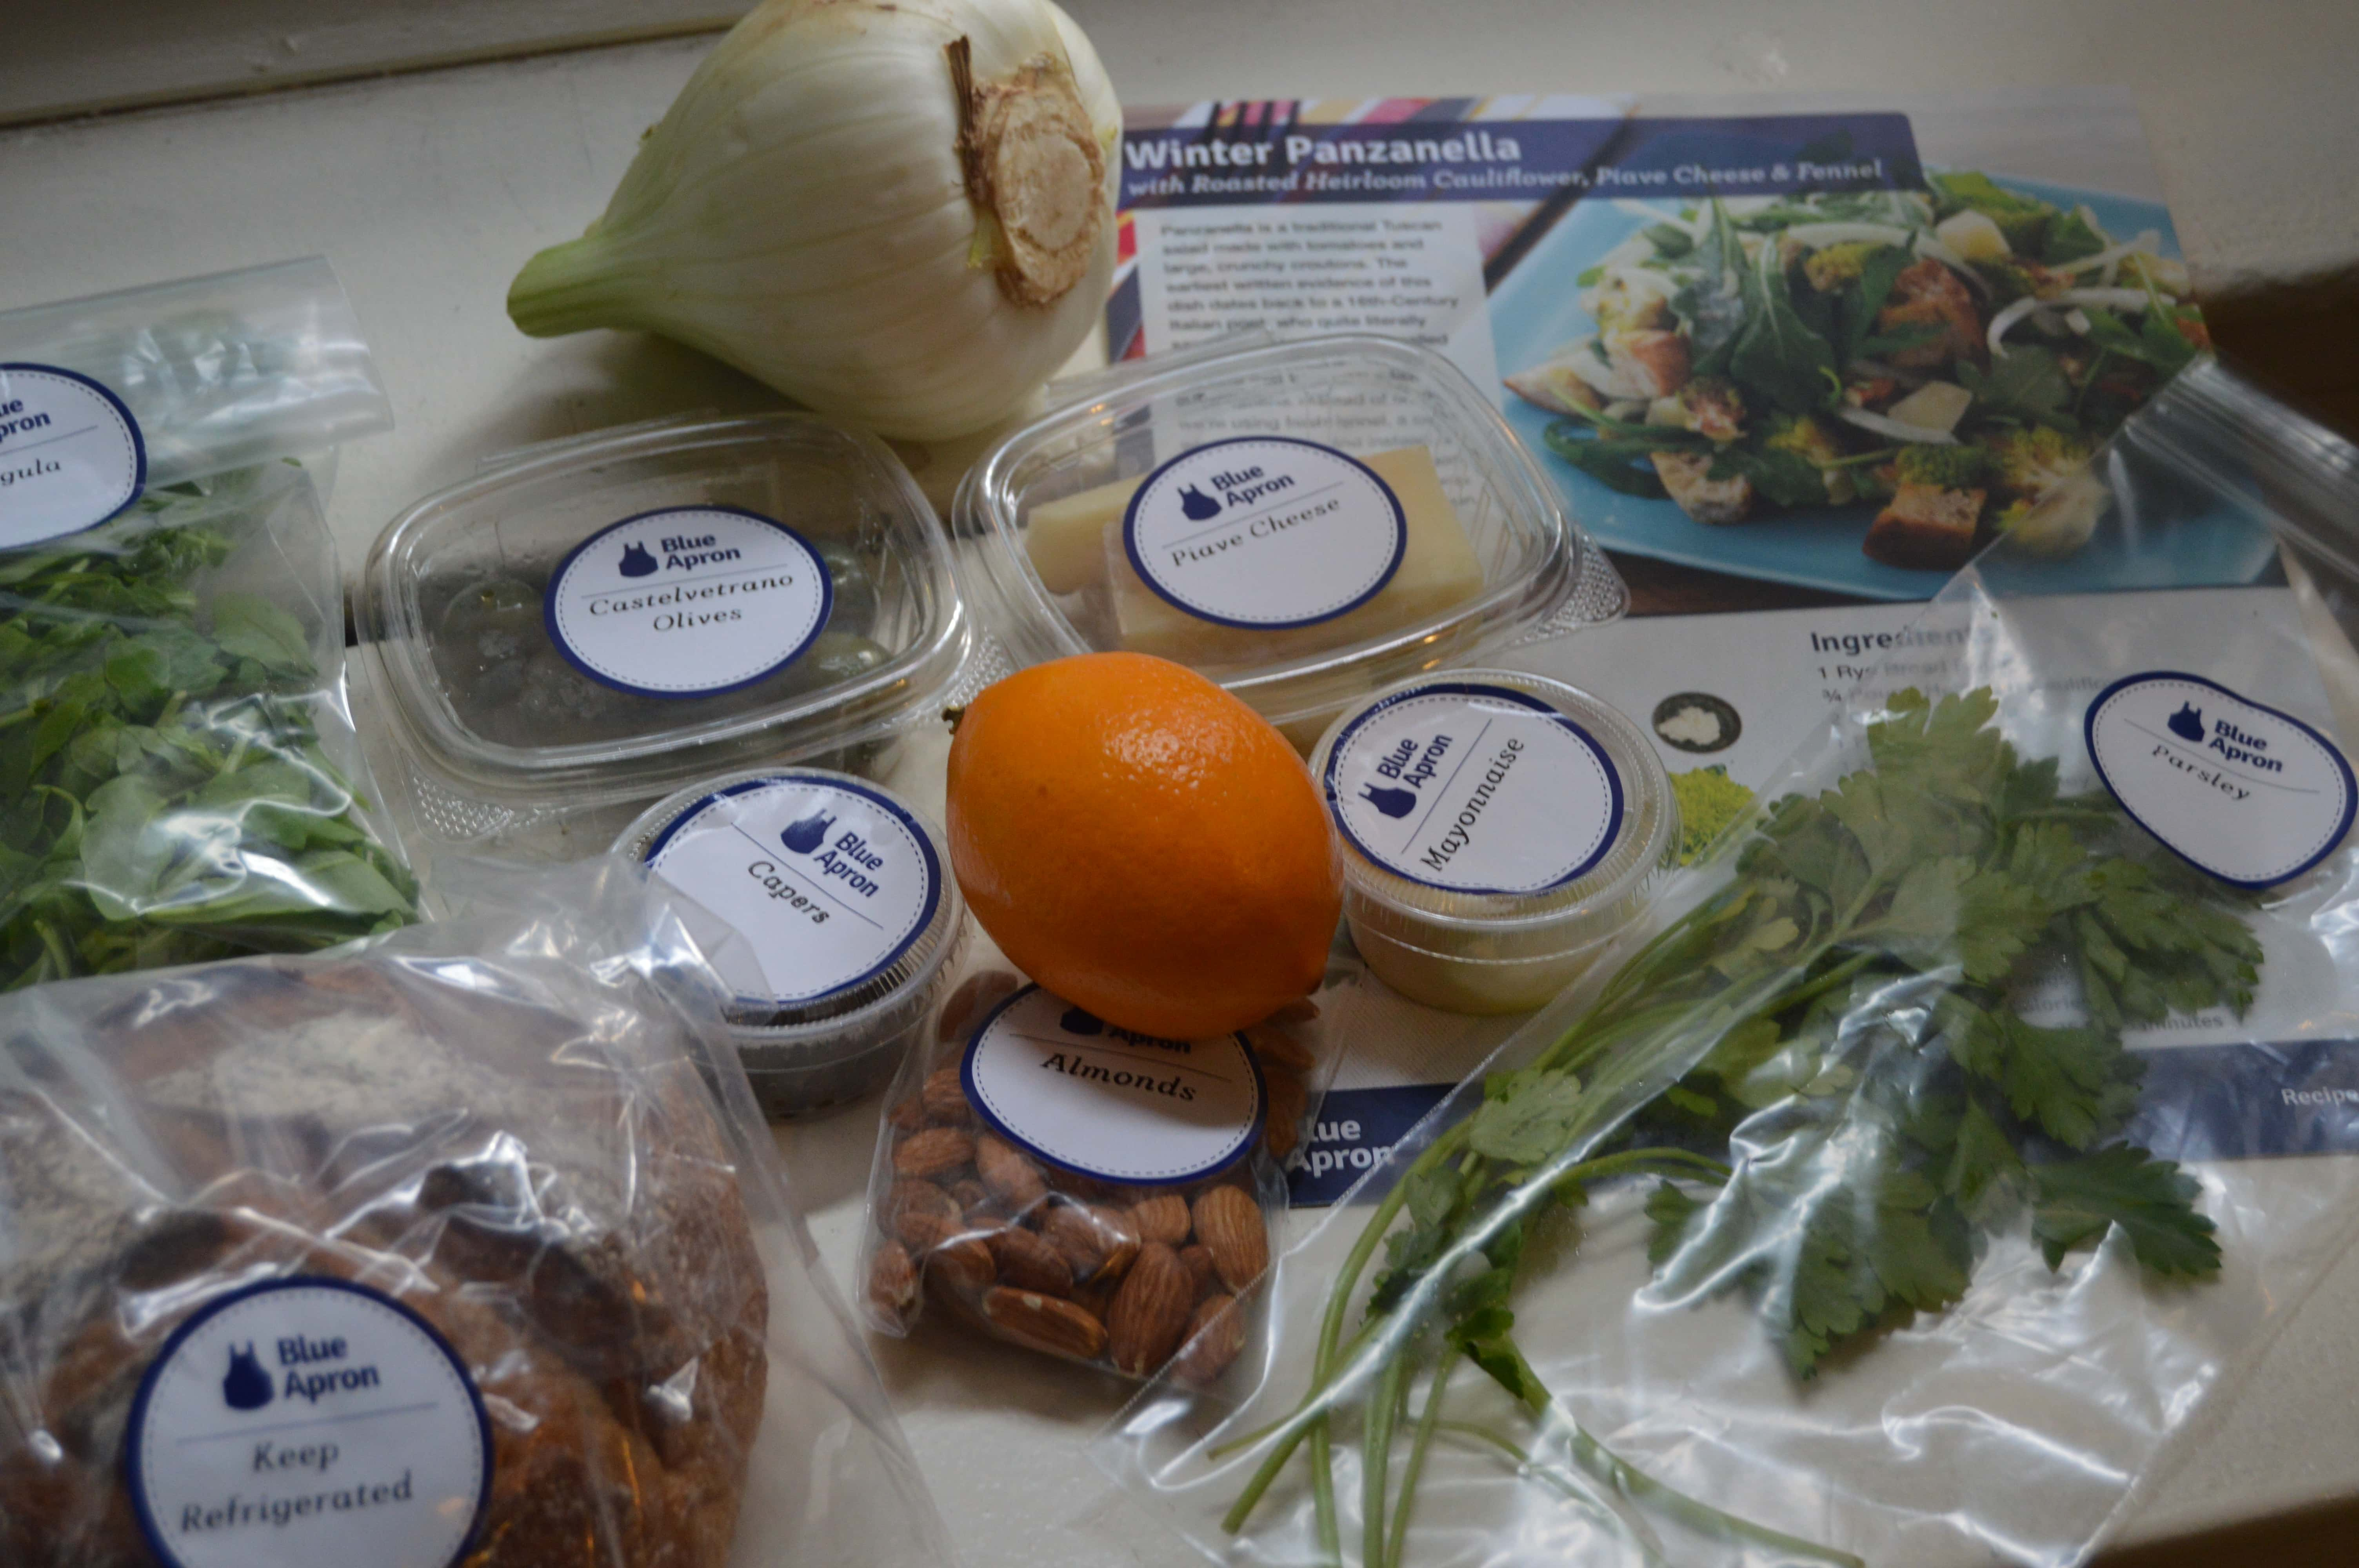 Blue apron korean rice cakes